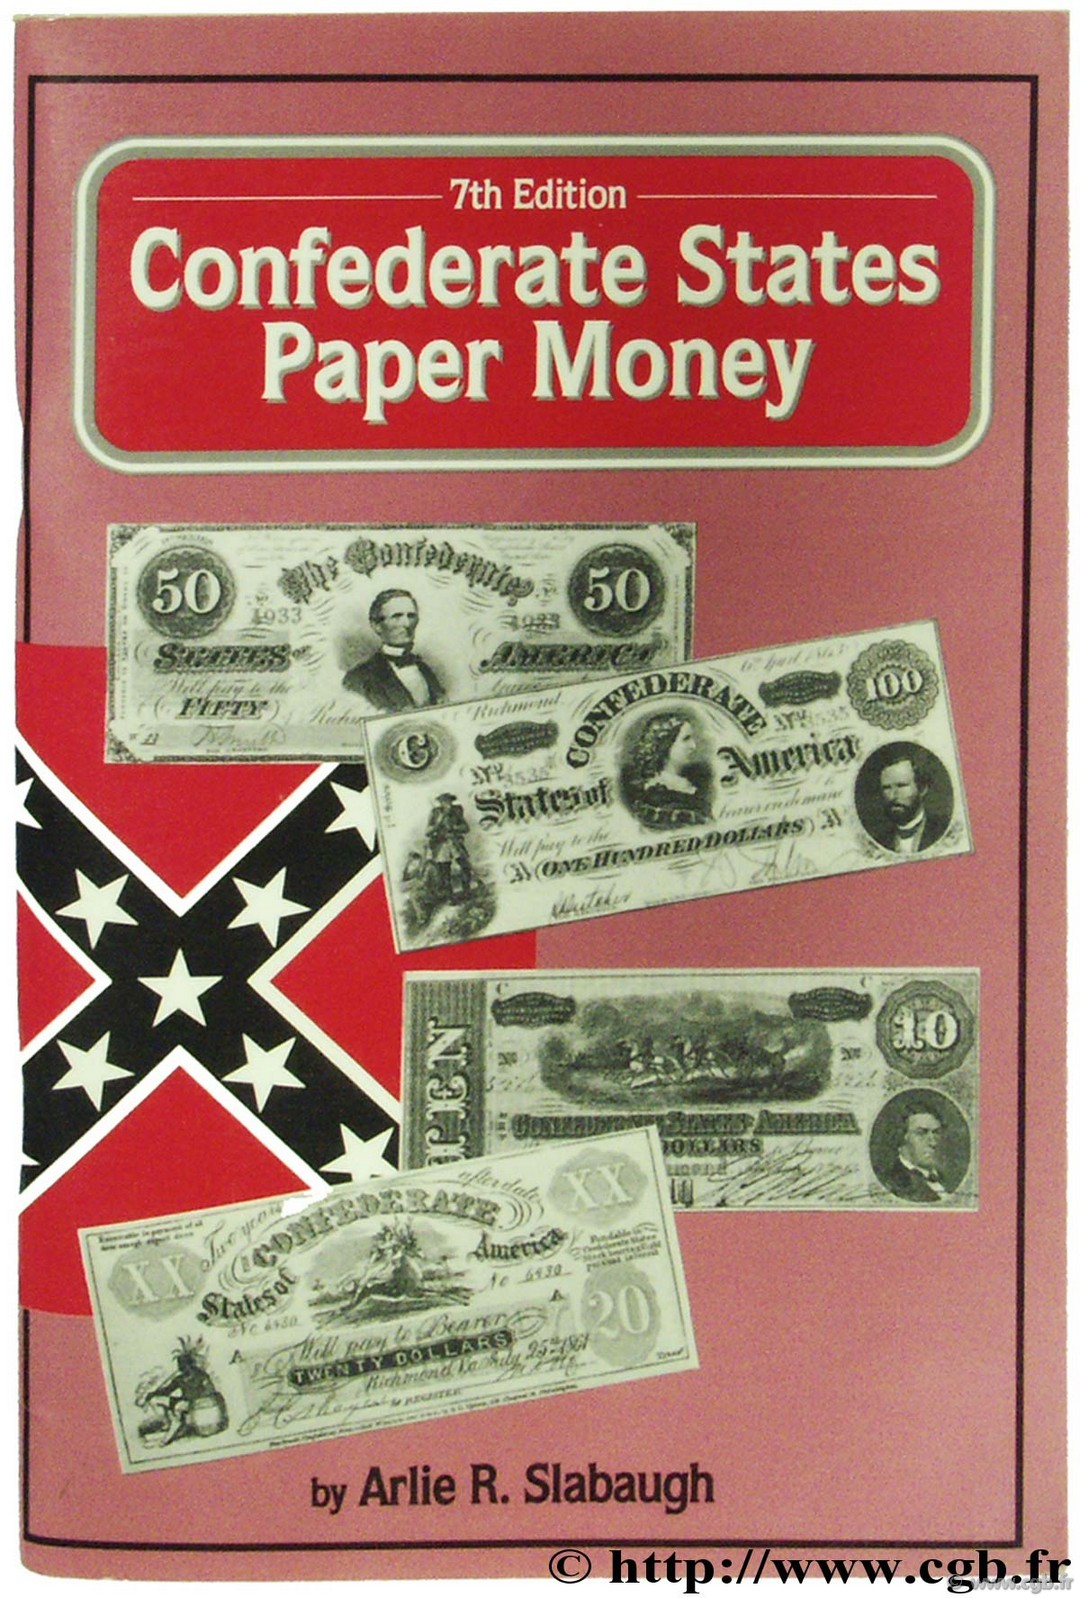 Confederate states paper money - 7th edition SLABAUGH A.-R.